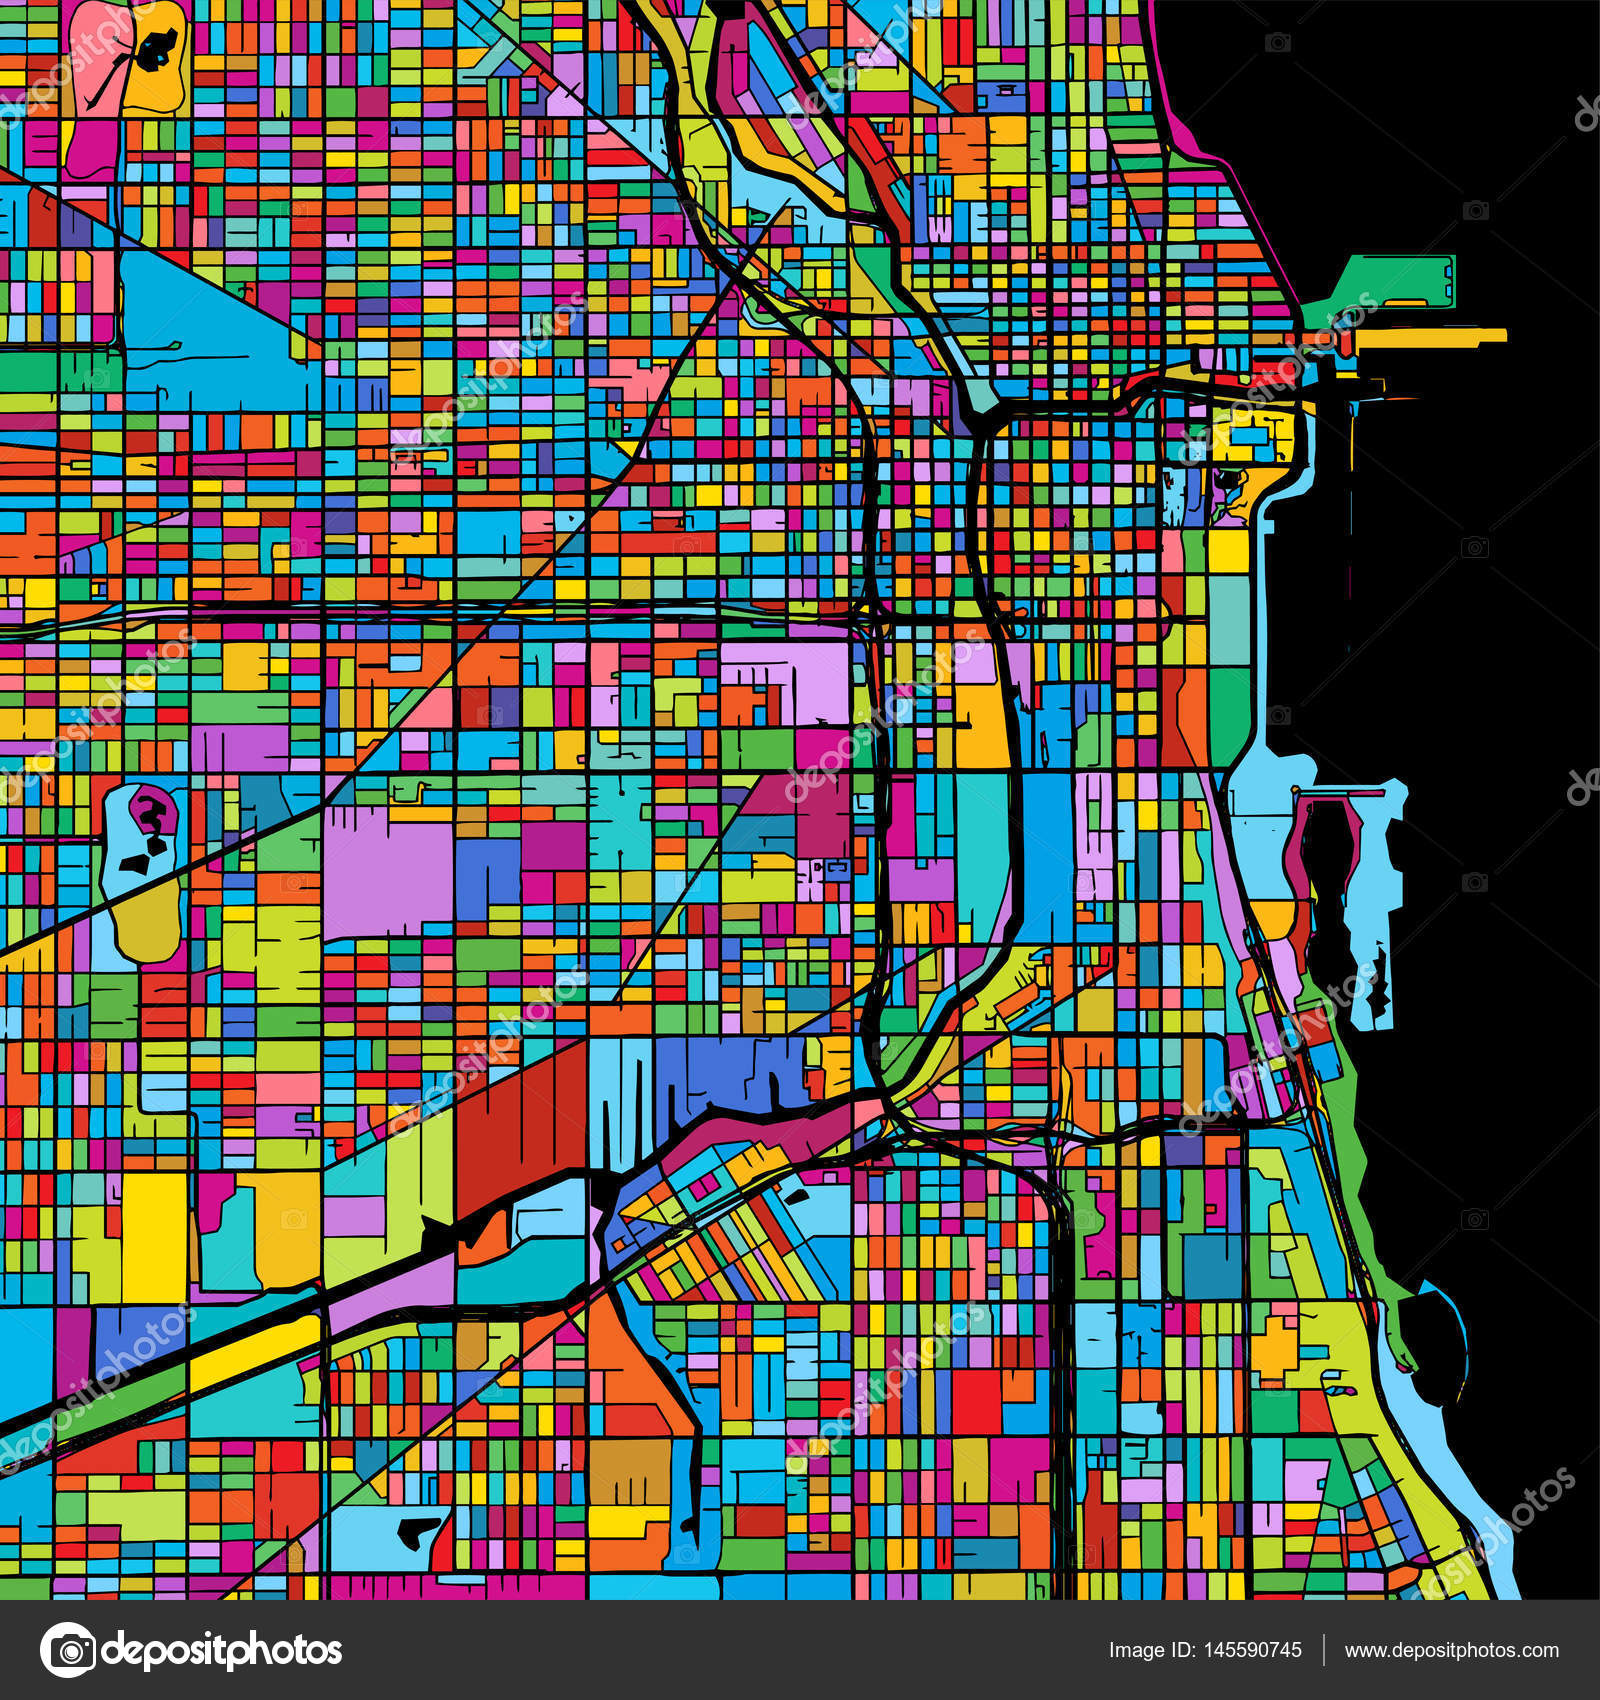 Vector: chicago map | Chicago, USA, Colorful Vector Map on ... on puerto rico in chicago, money in chicago, bike in chicago, ball in chicago, weather in chicago, usa map in miami, statue of liberty in chicago, animals in chicago, butterflies in chicago, transportation in chicago, nebraska in chicago, home in chicago, turkey in chicago, zip code map in chicago,